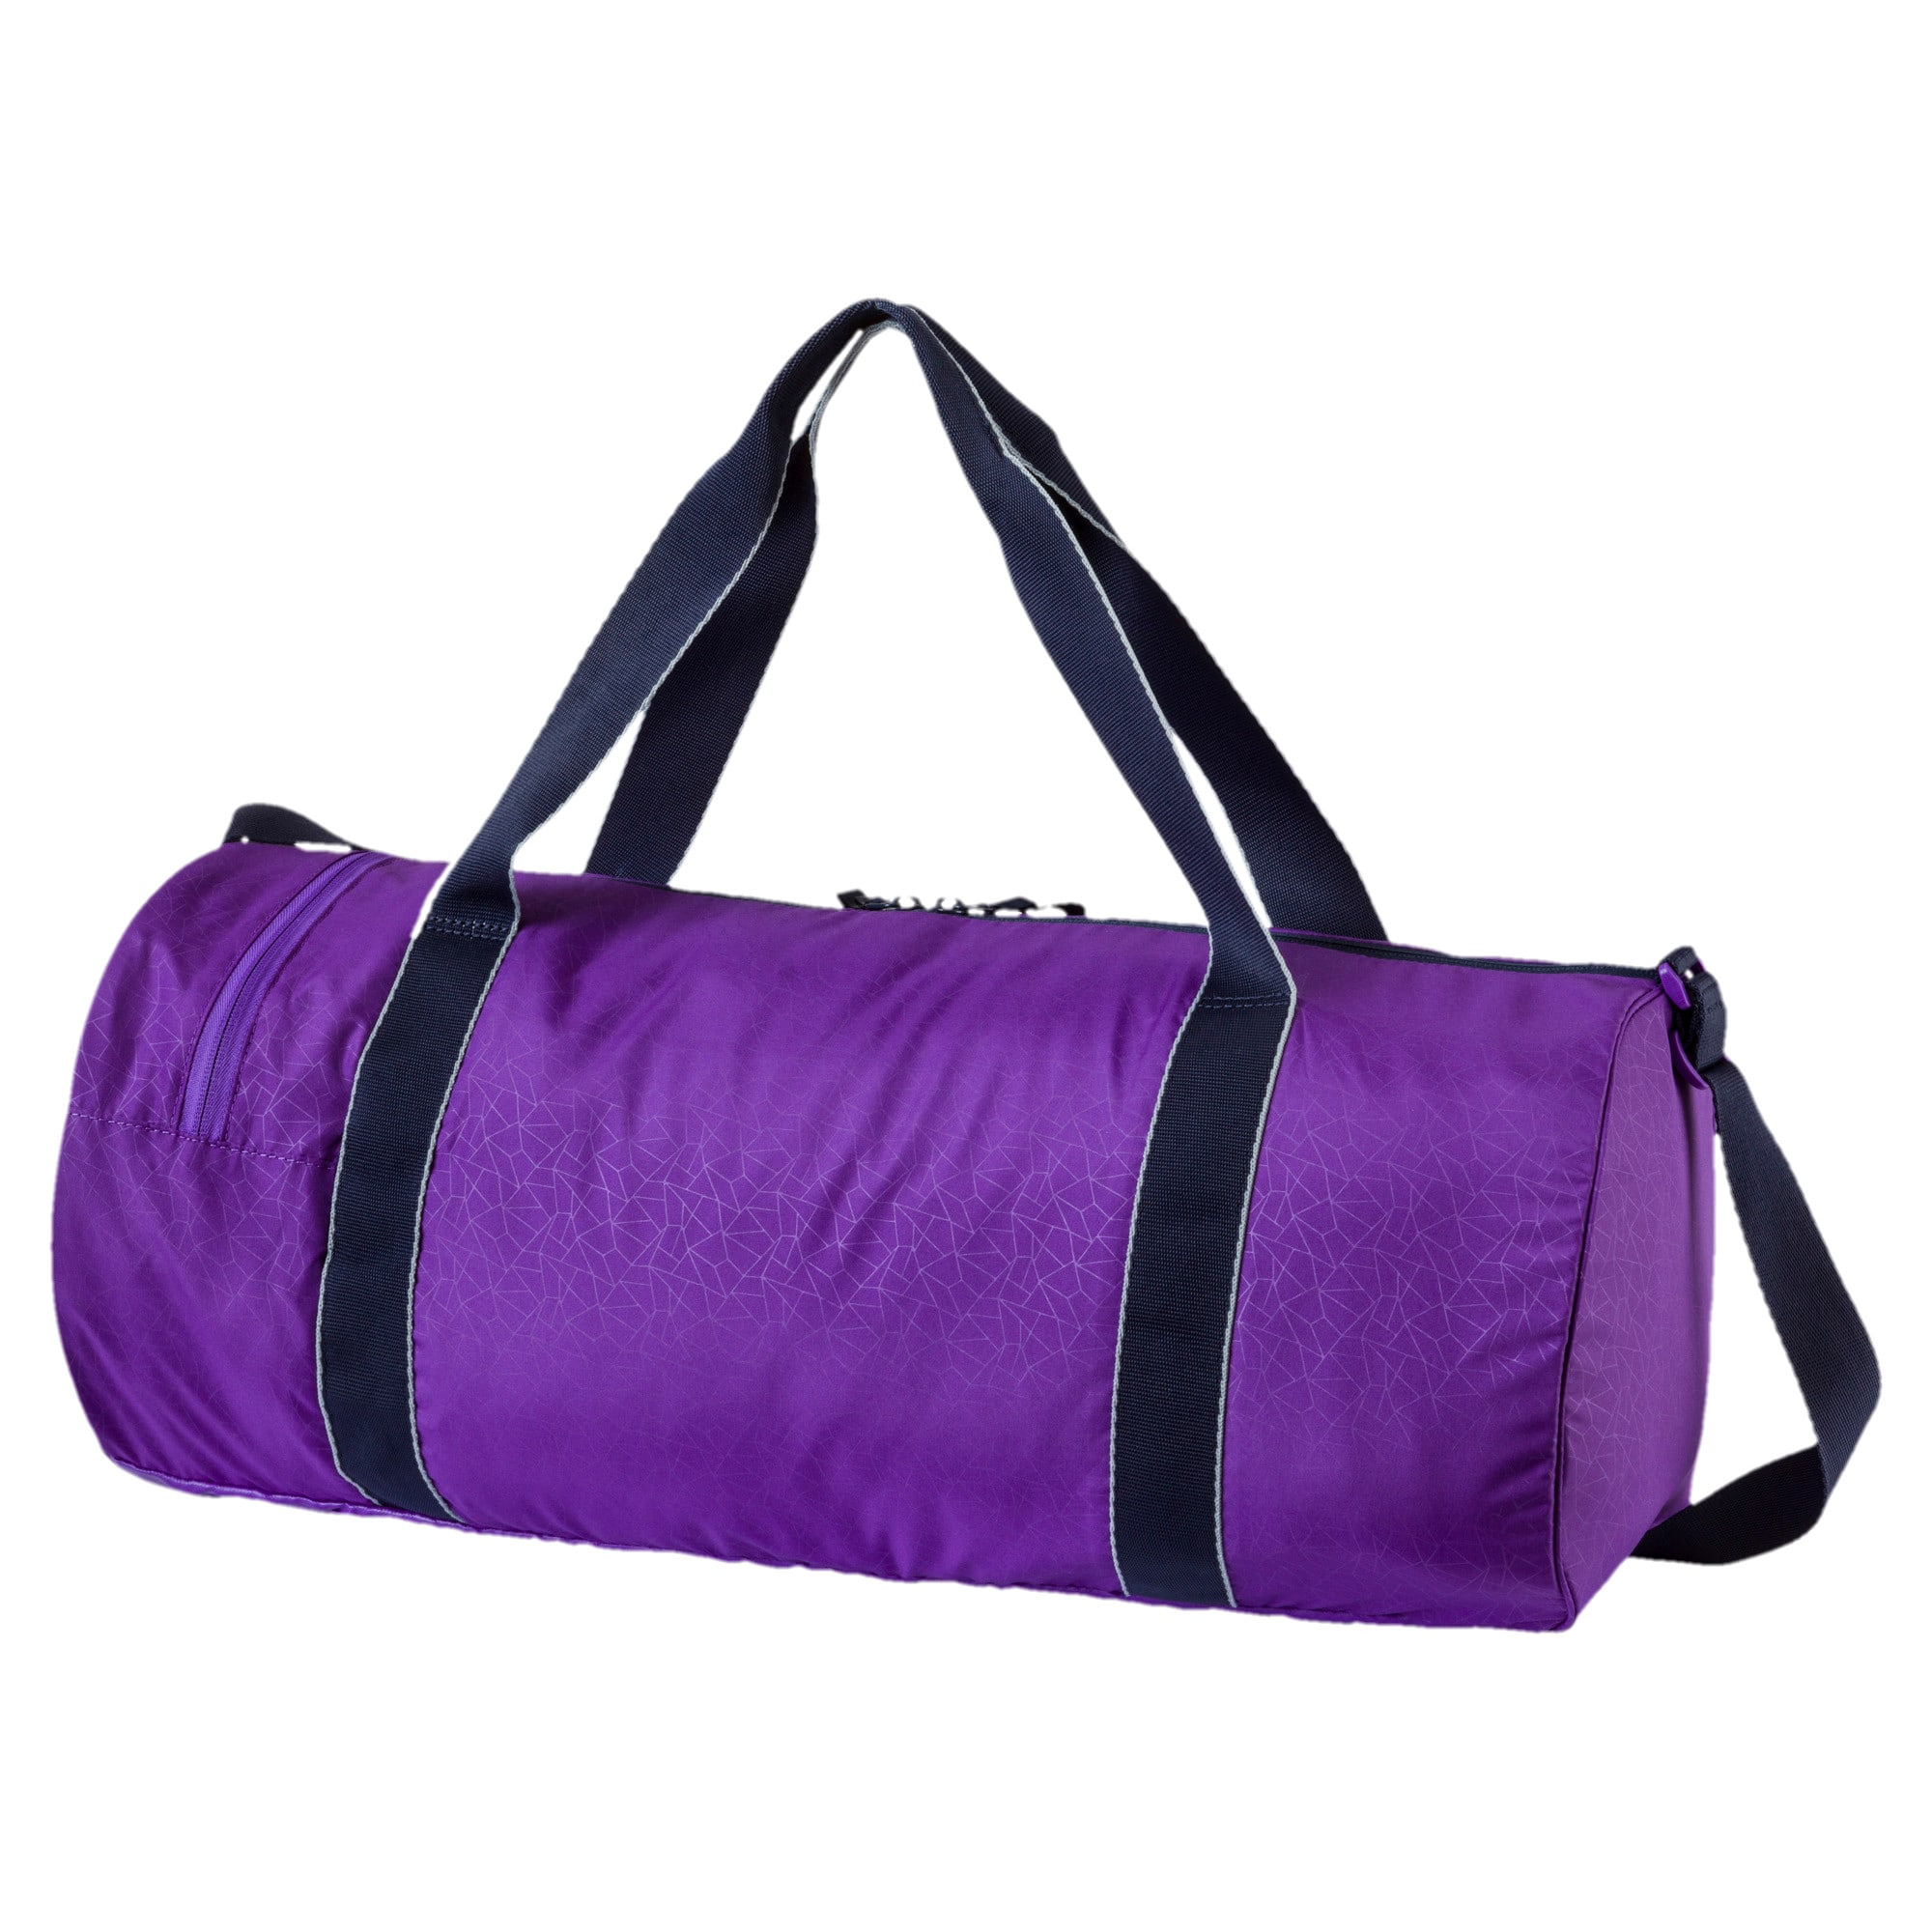 Thumbnail 2 of Training Women's Sports Bag, ELECTRIC PURPLE-Peacoat, medium-IND